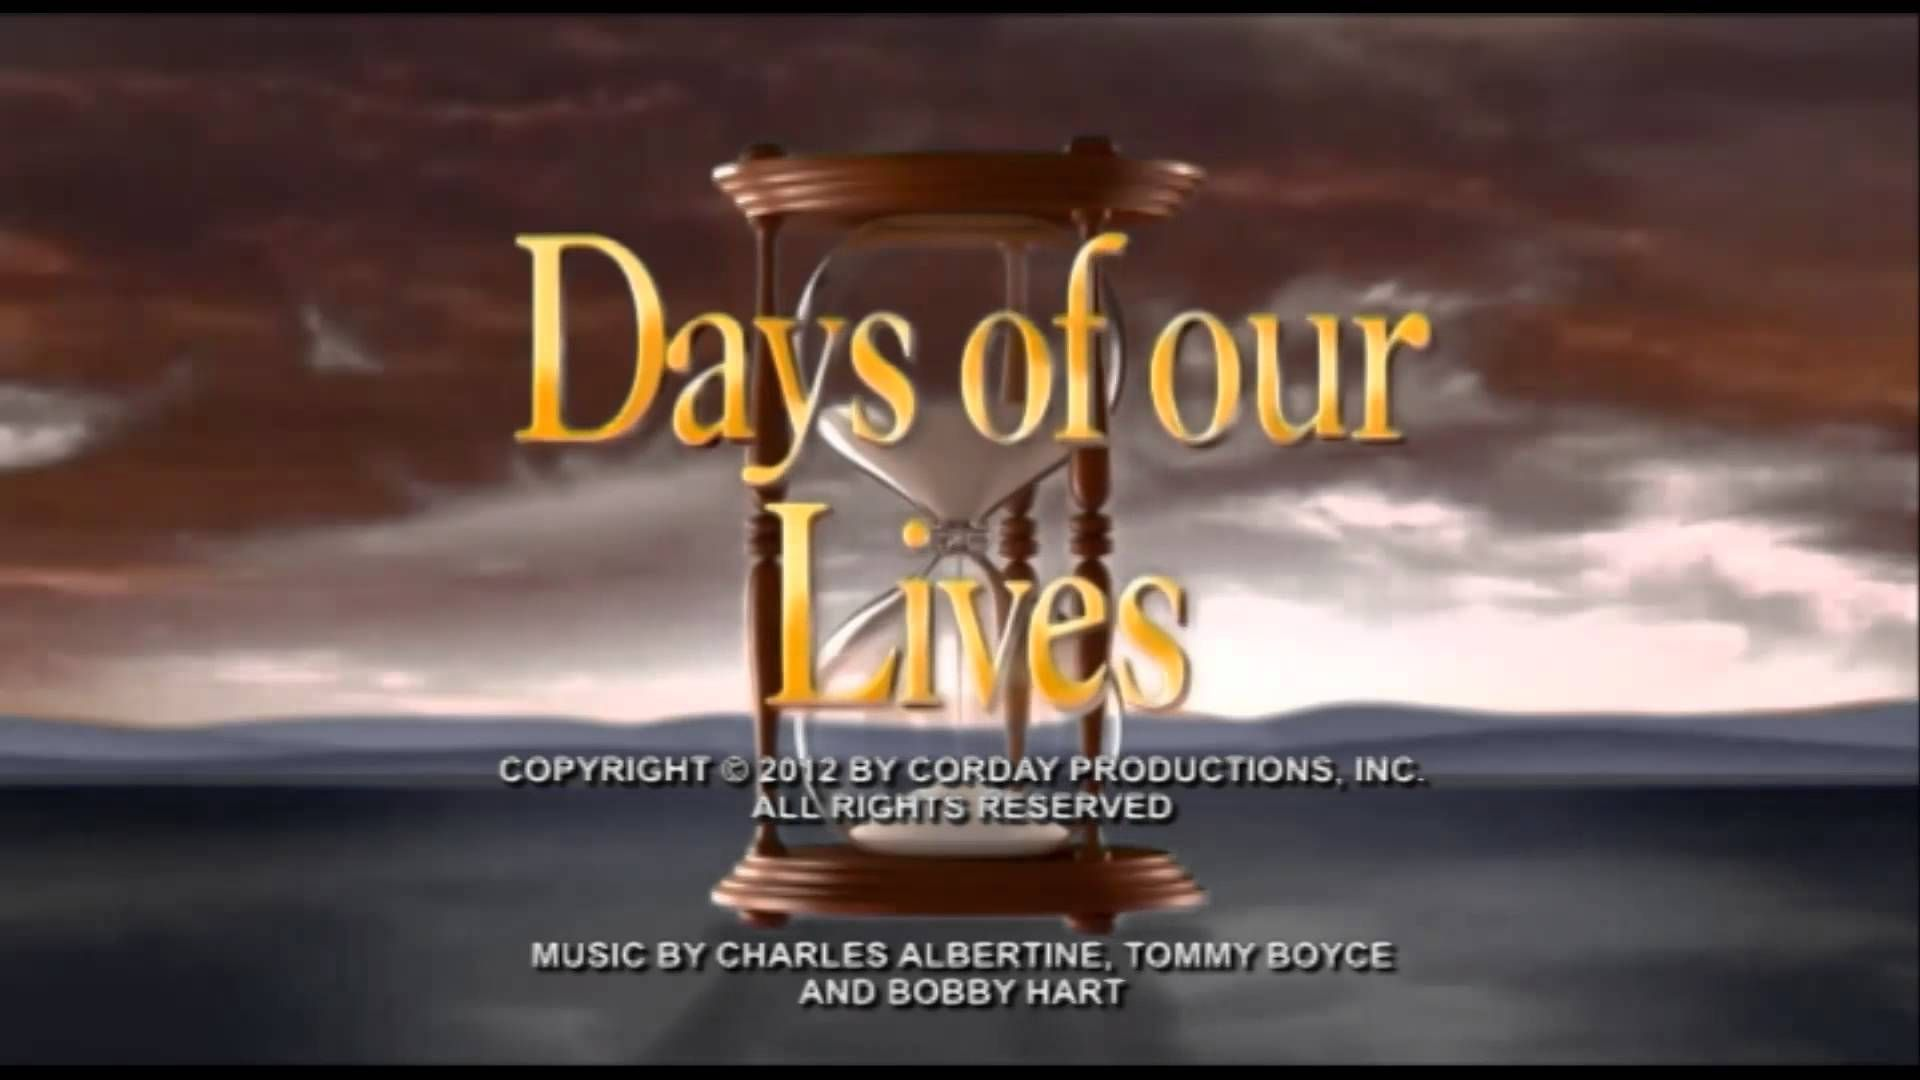 Days Of Our Lives Full Music Theme Days Of Our Lives Day Of My Life Tv Show Music